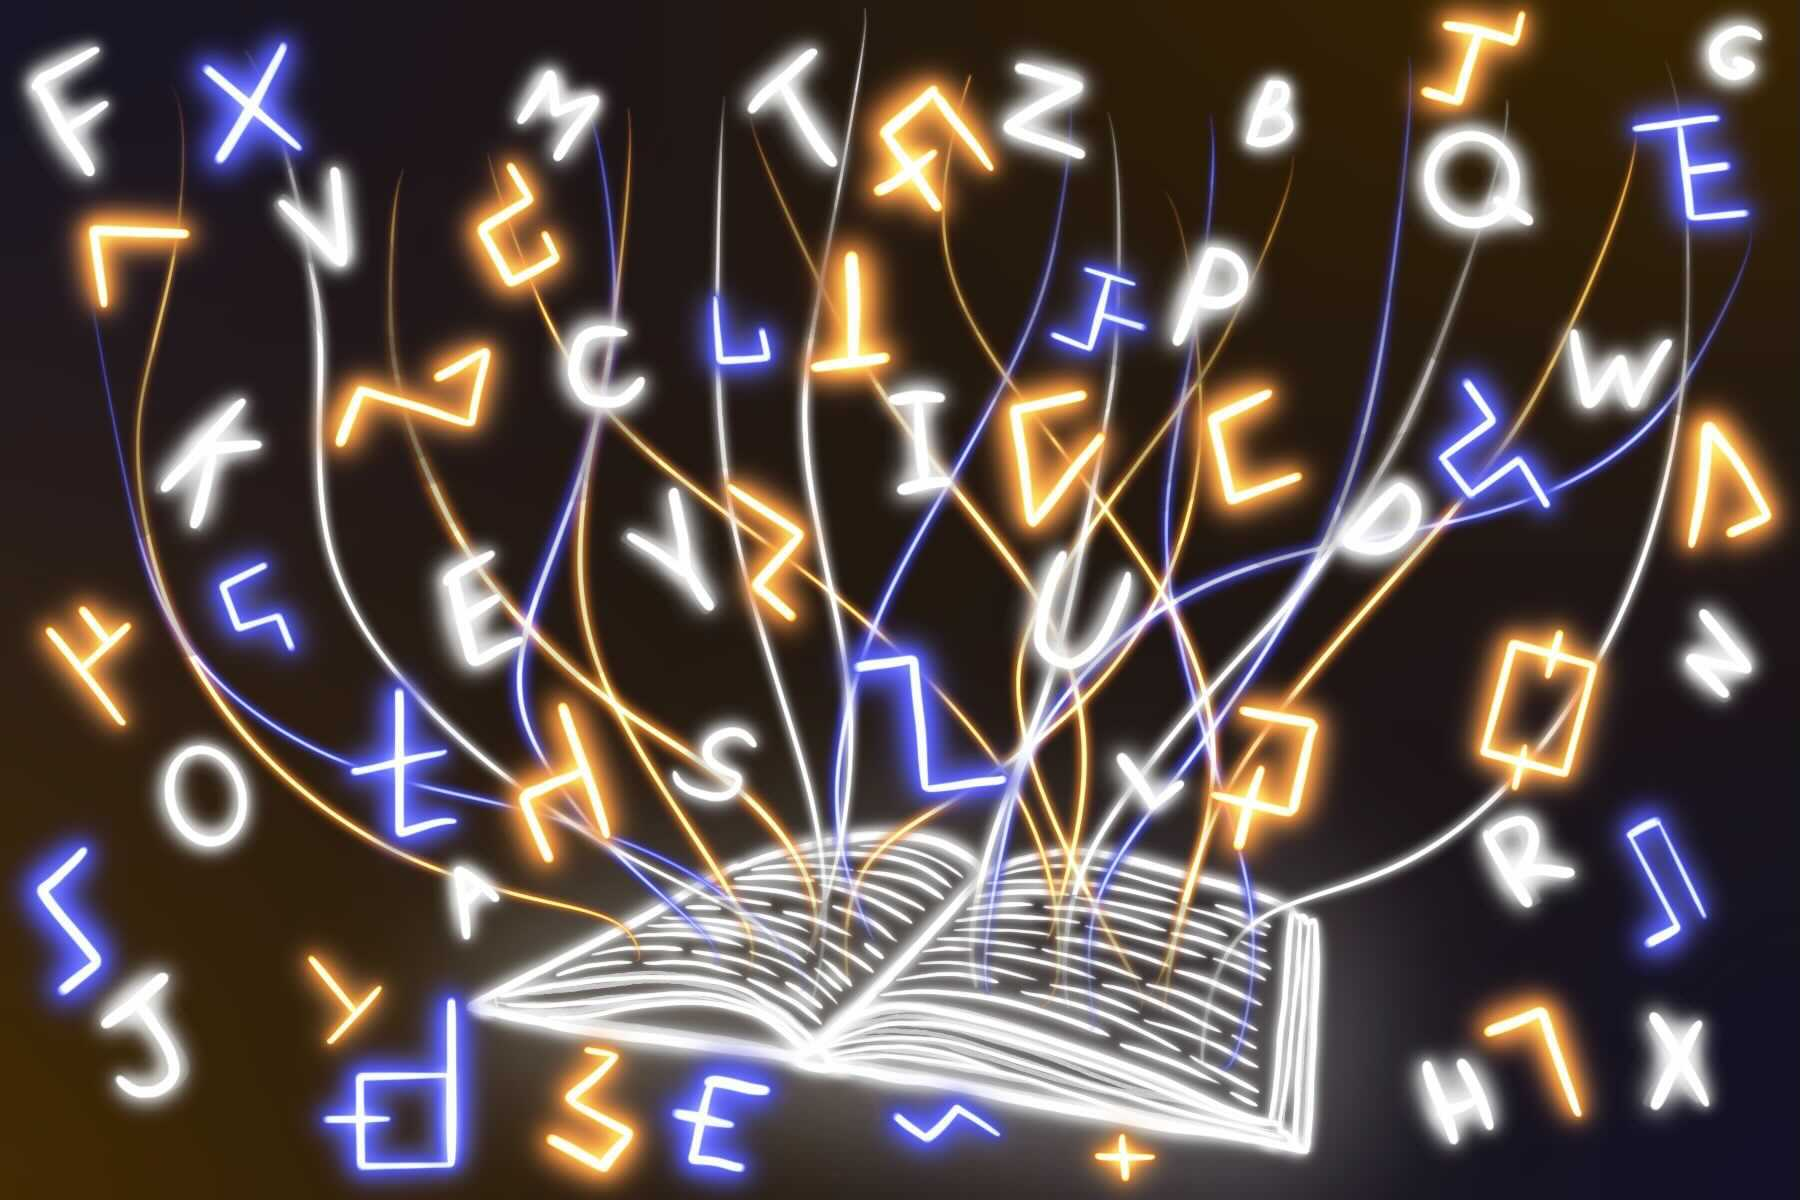 in an article about conlanging, an illustration of an open book with letters surrounding it on all sides